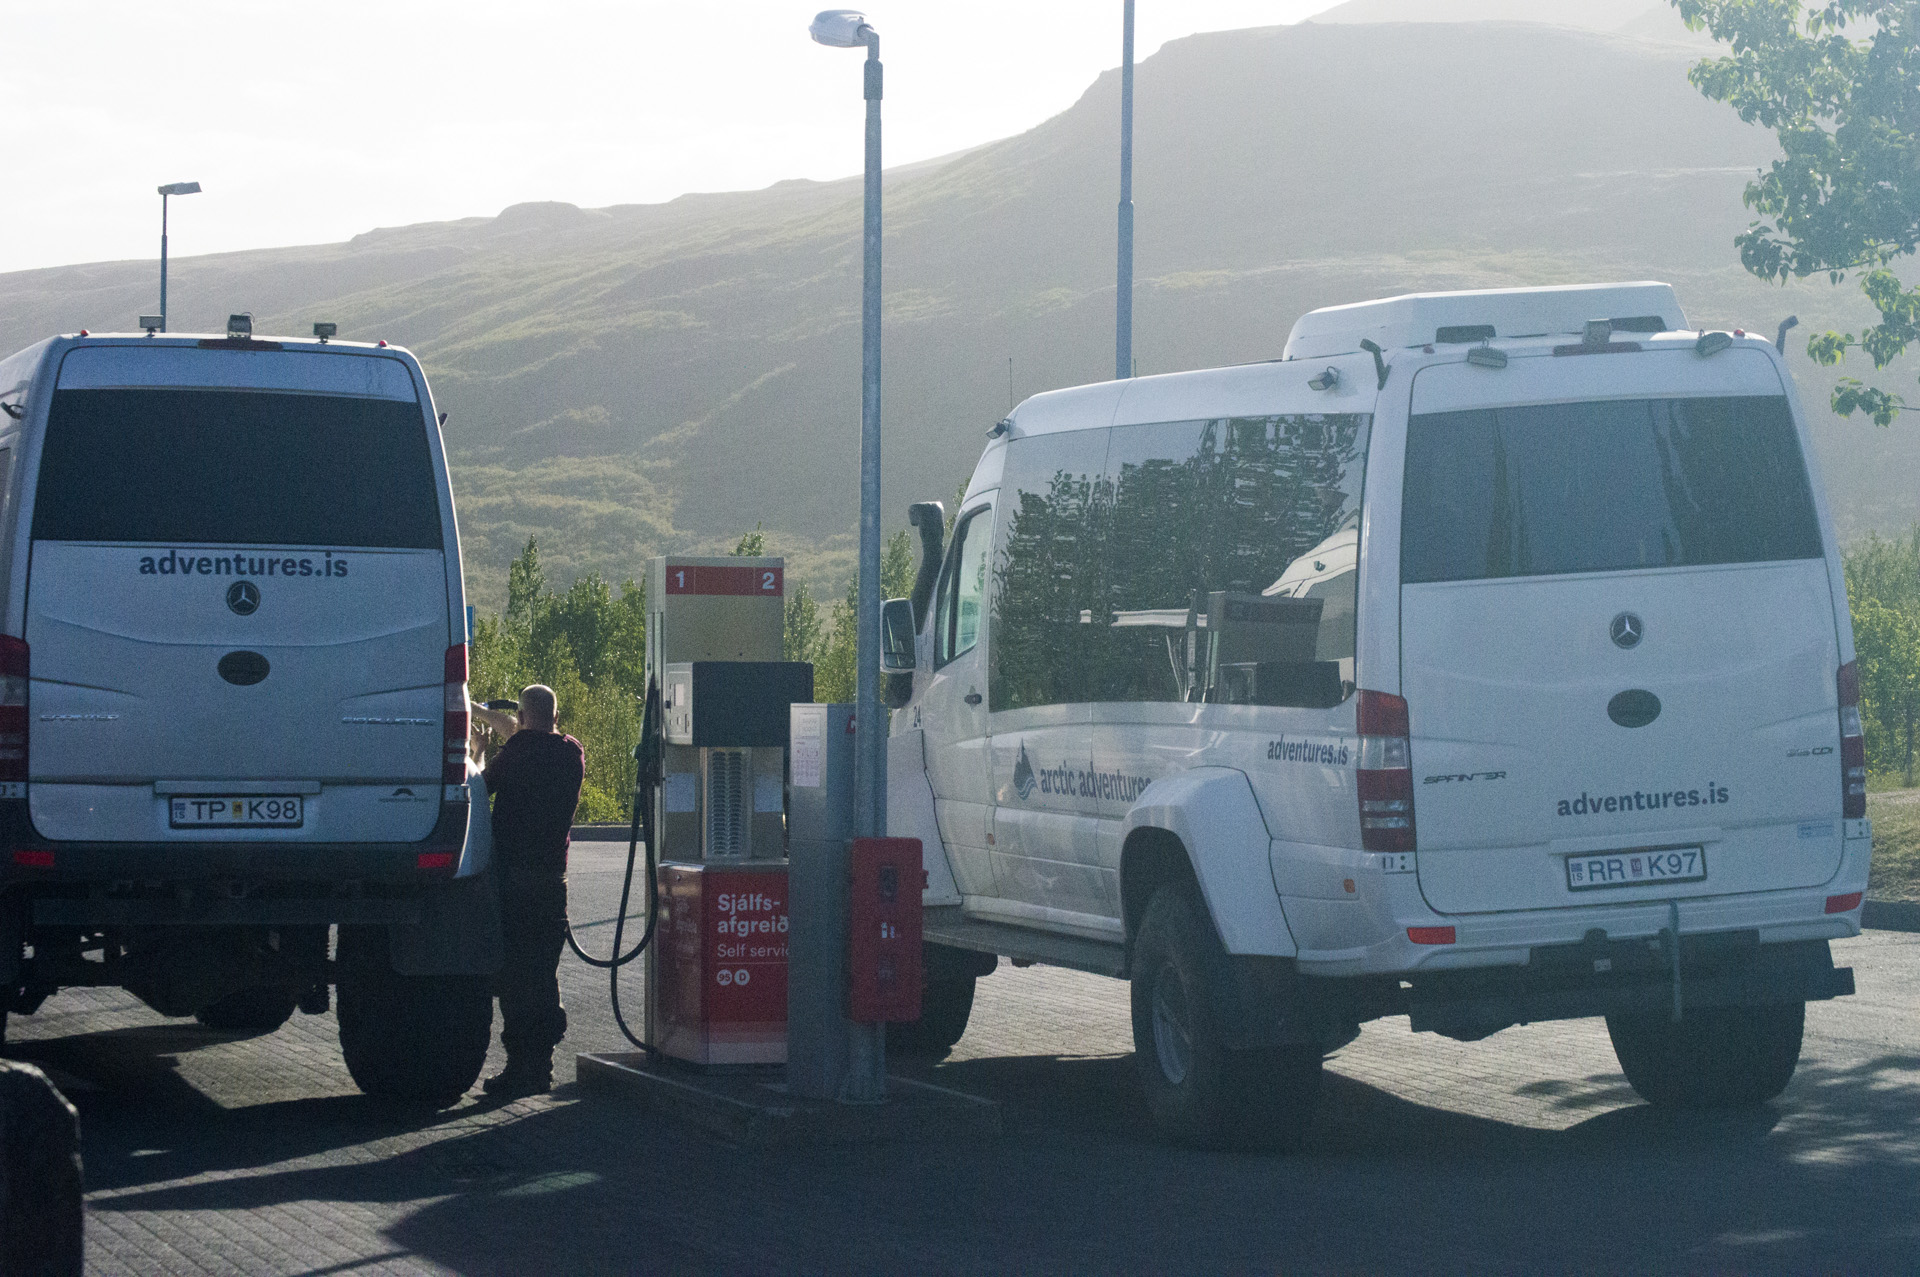 Off-road tourist vehicles refill at the Geysir Center.